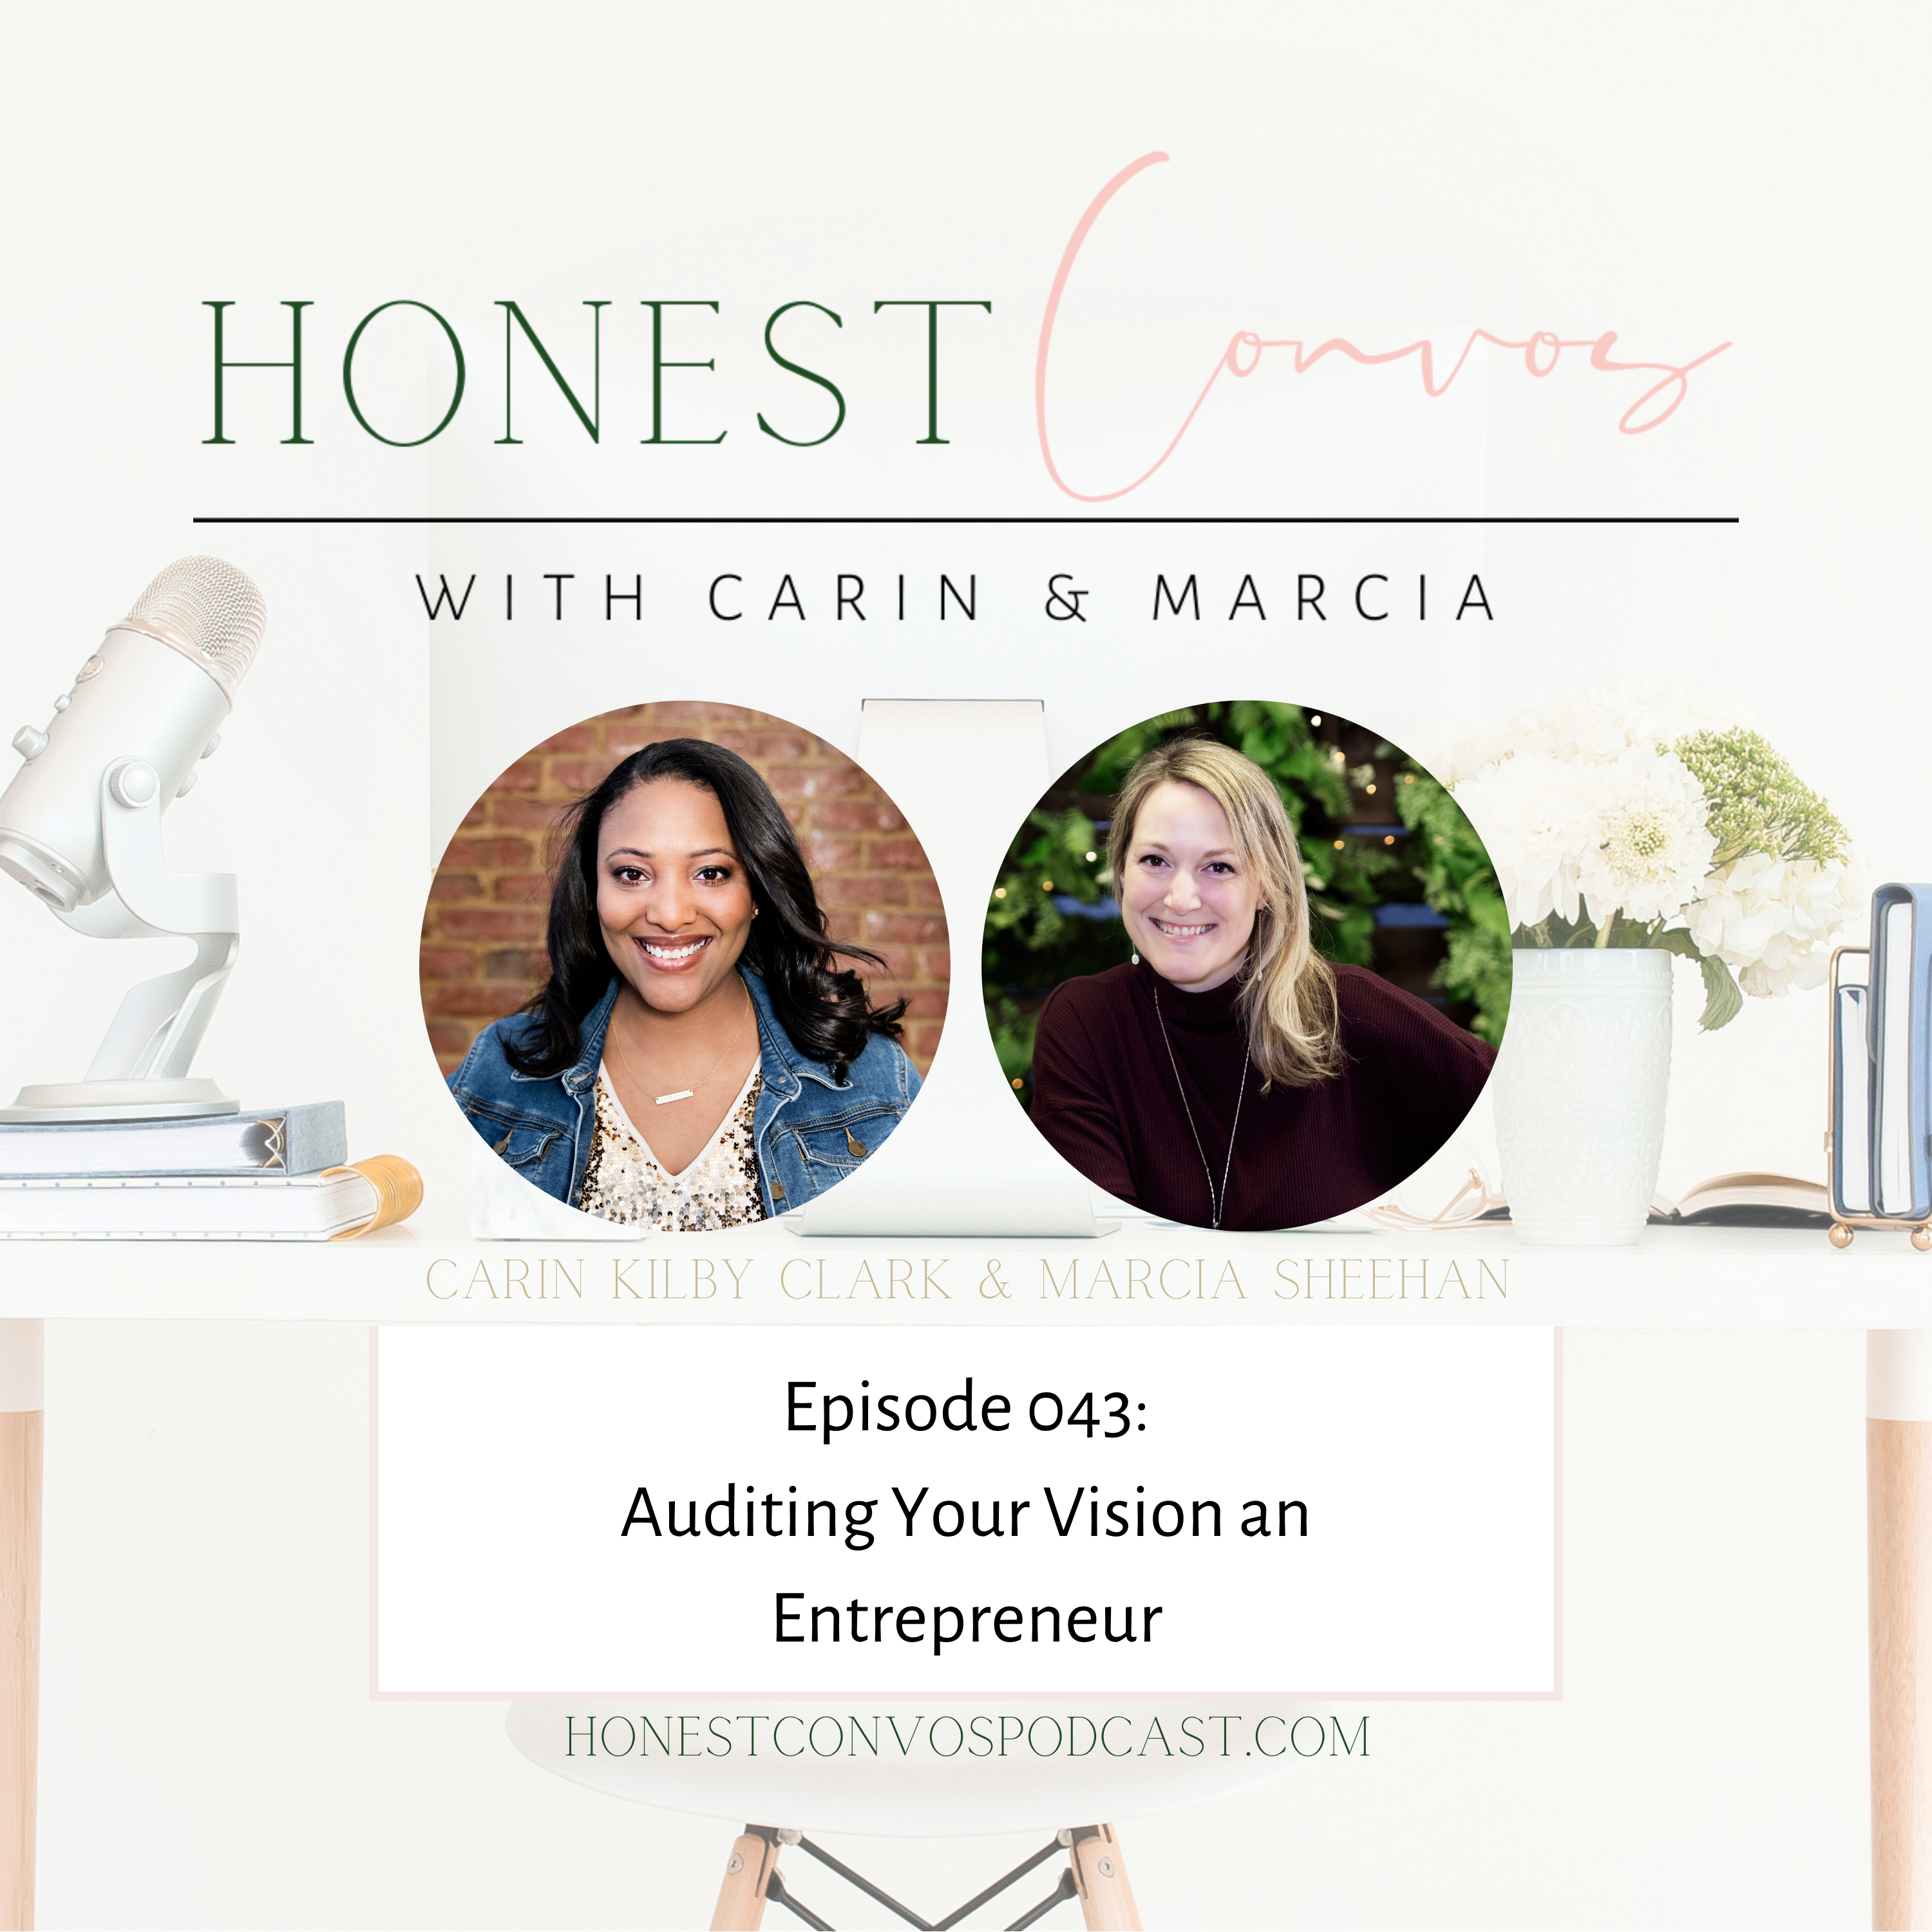 Auditing Your Vision as an Entrepreneur